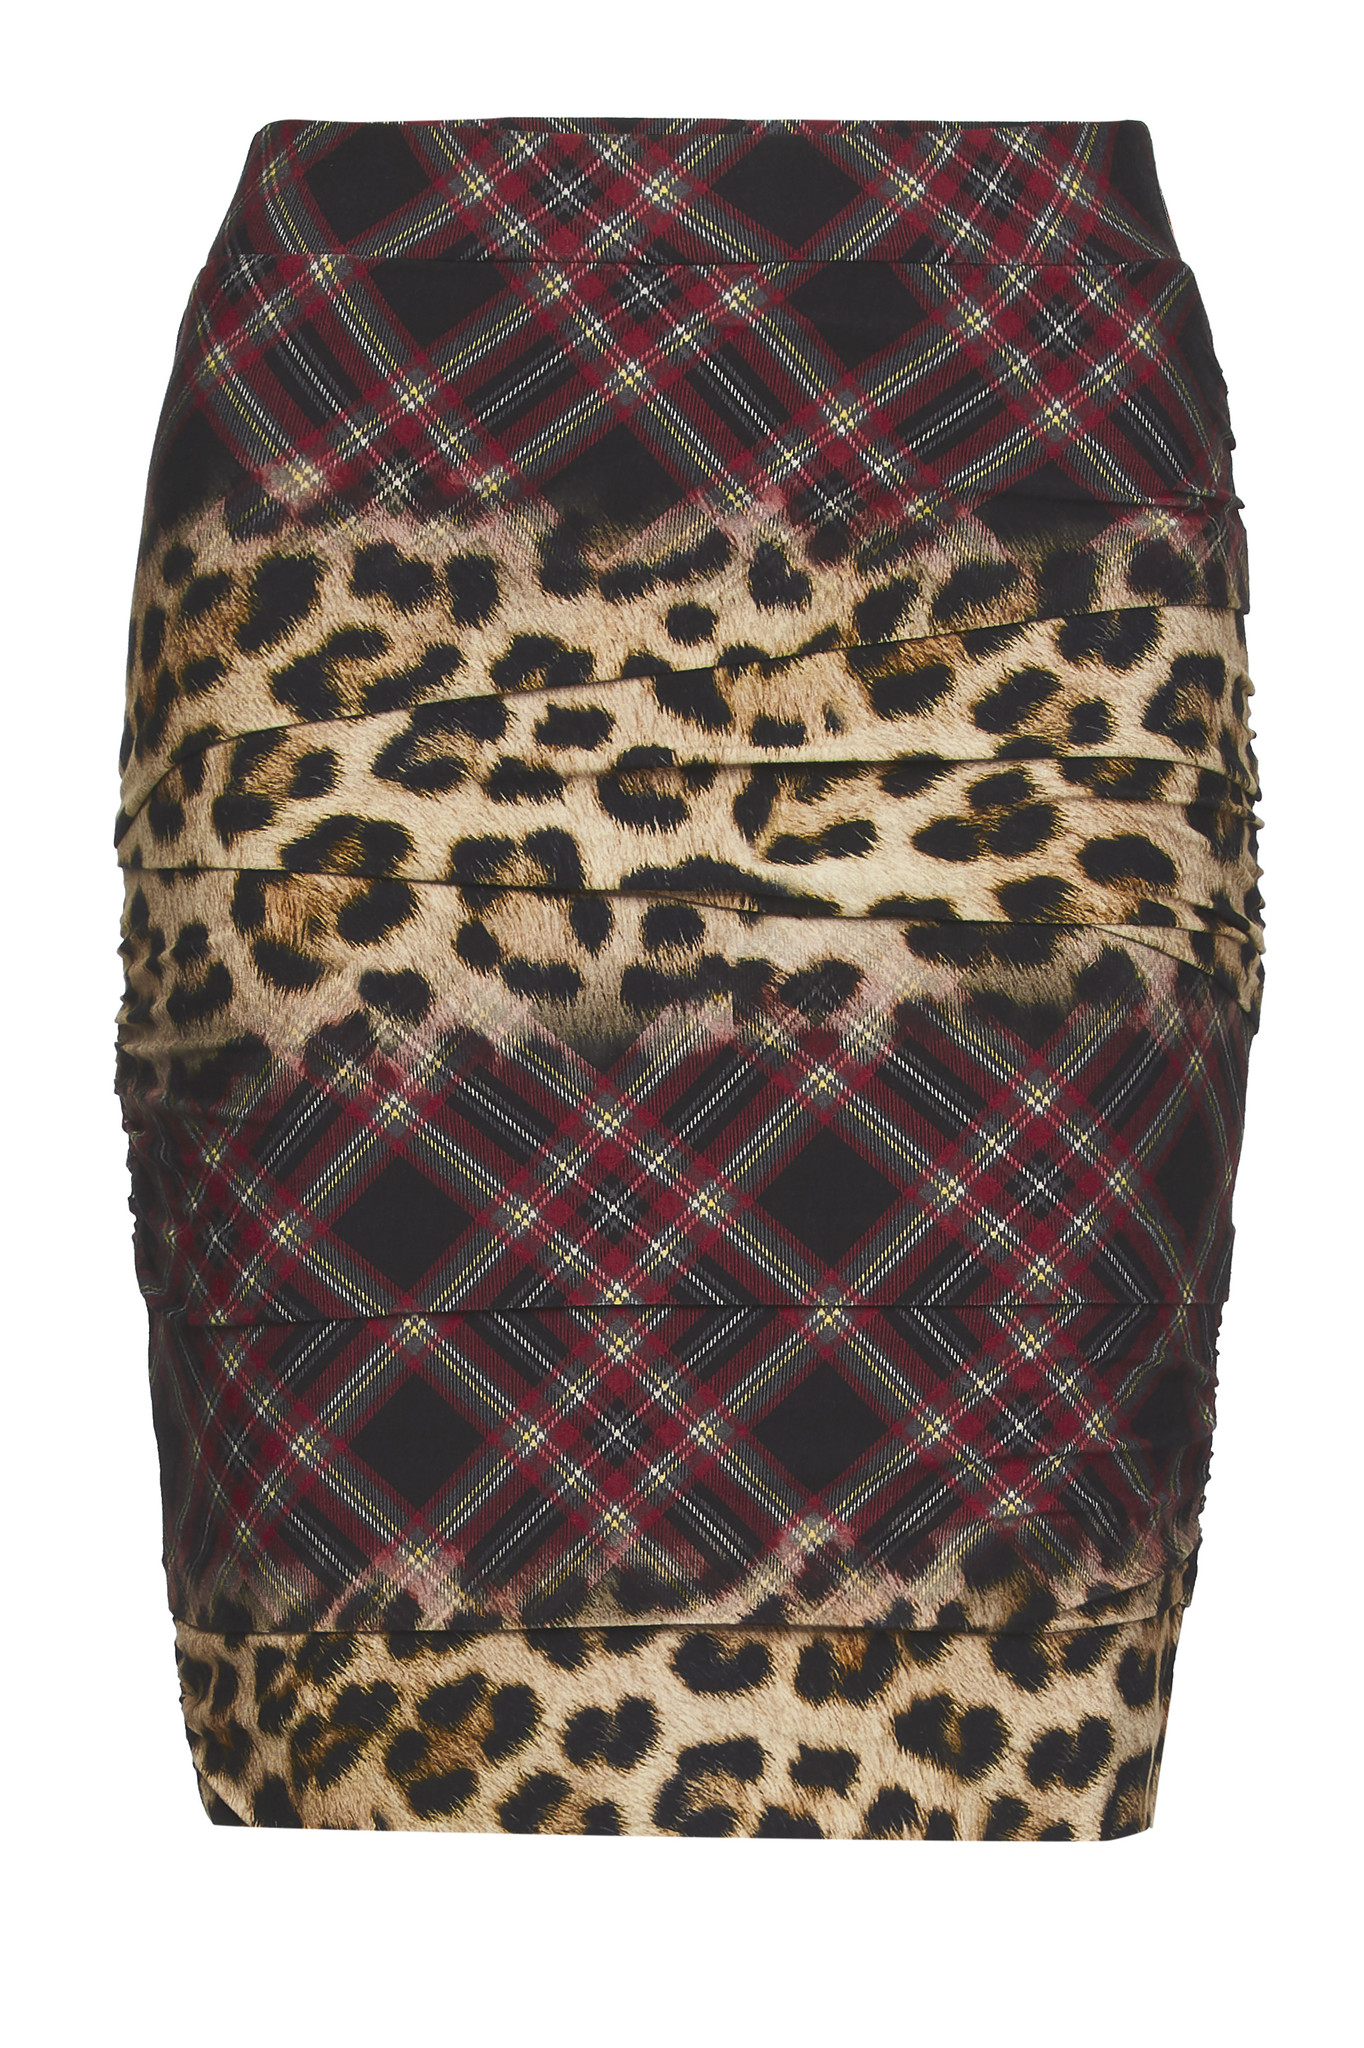 TESSA KOOPS KYLIE PANTER PLAID SKIRT